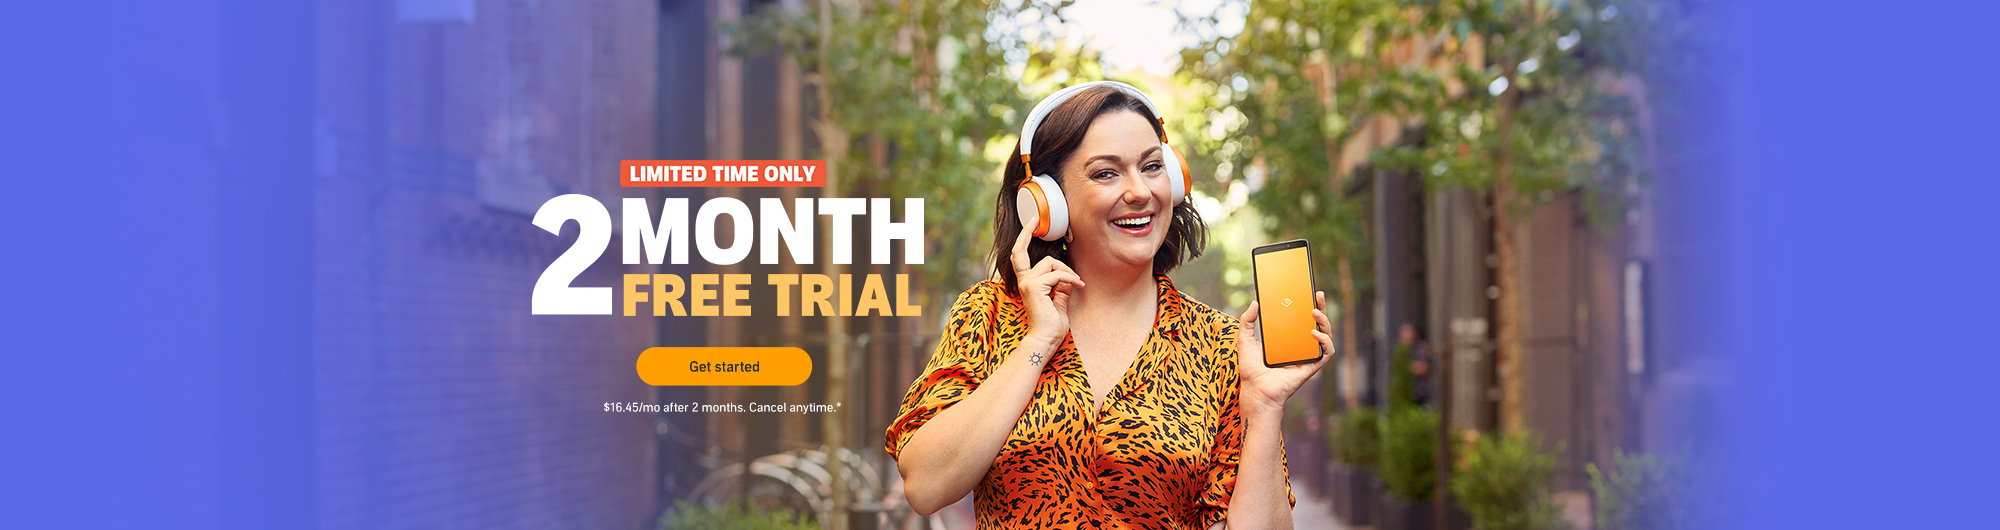 For a limited time only, get a free 2-month trial of Audible. New members only. After 2 months, Audible is $16.45. Cancel anytime.